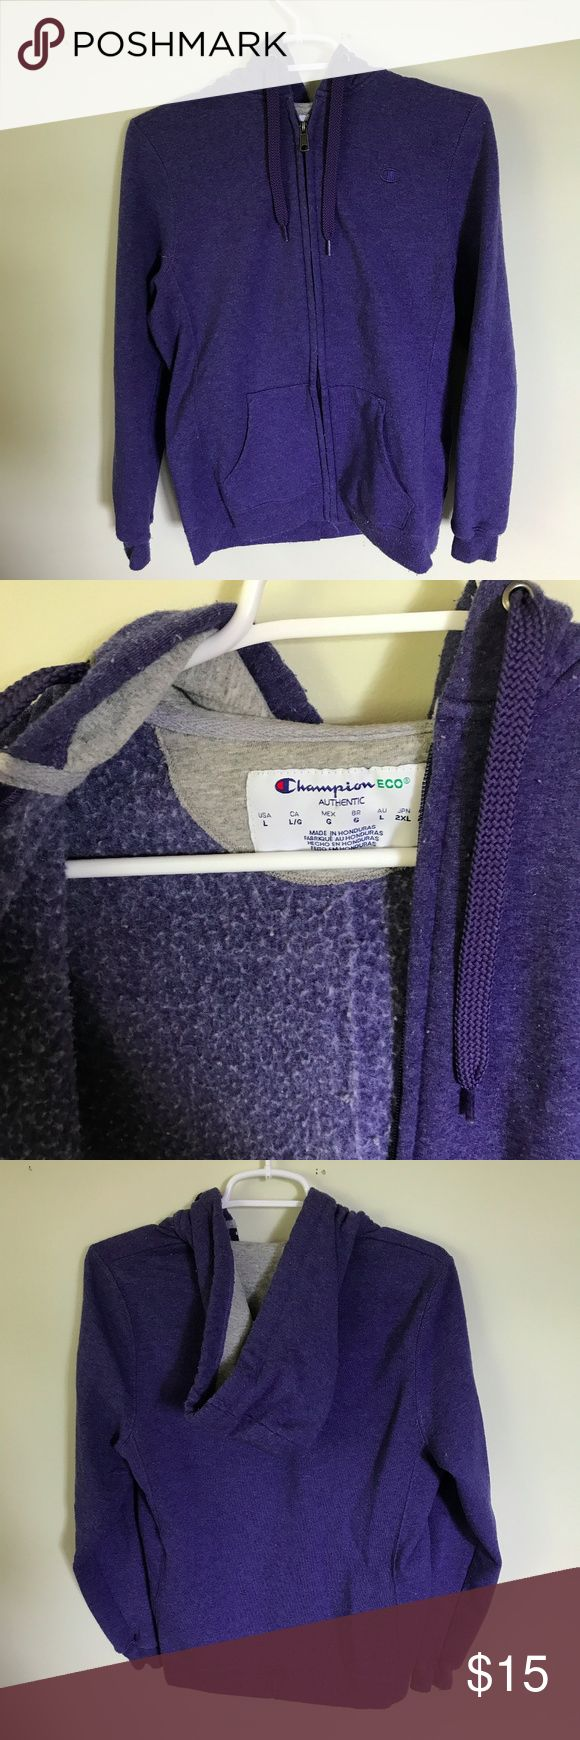 Champion Logo Purple Zip Up Hoodie Champion Logo Sweatshirt Used condition, there is wearing and pilling in the lining and minimal on the outer surface Size large Champion Sweaters